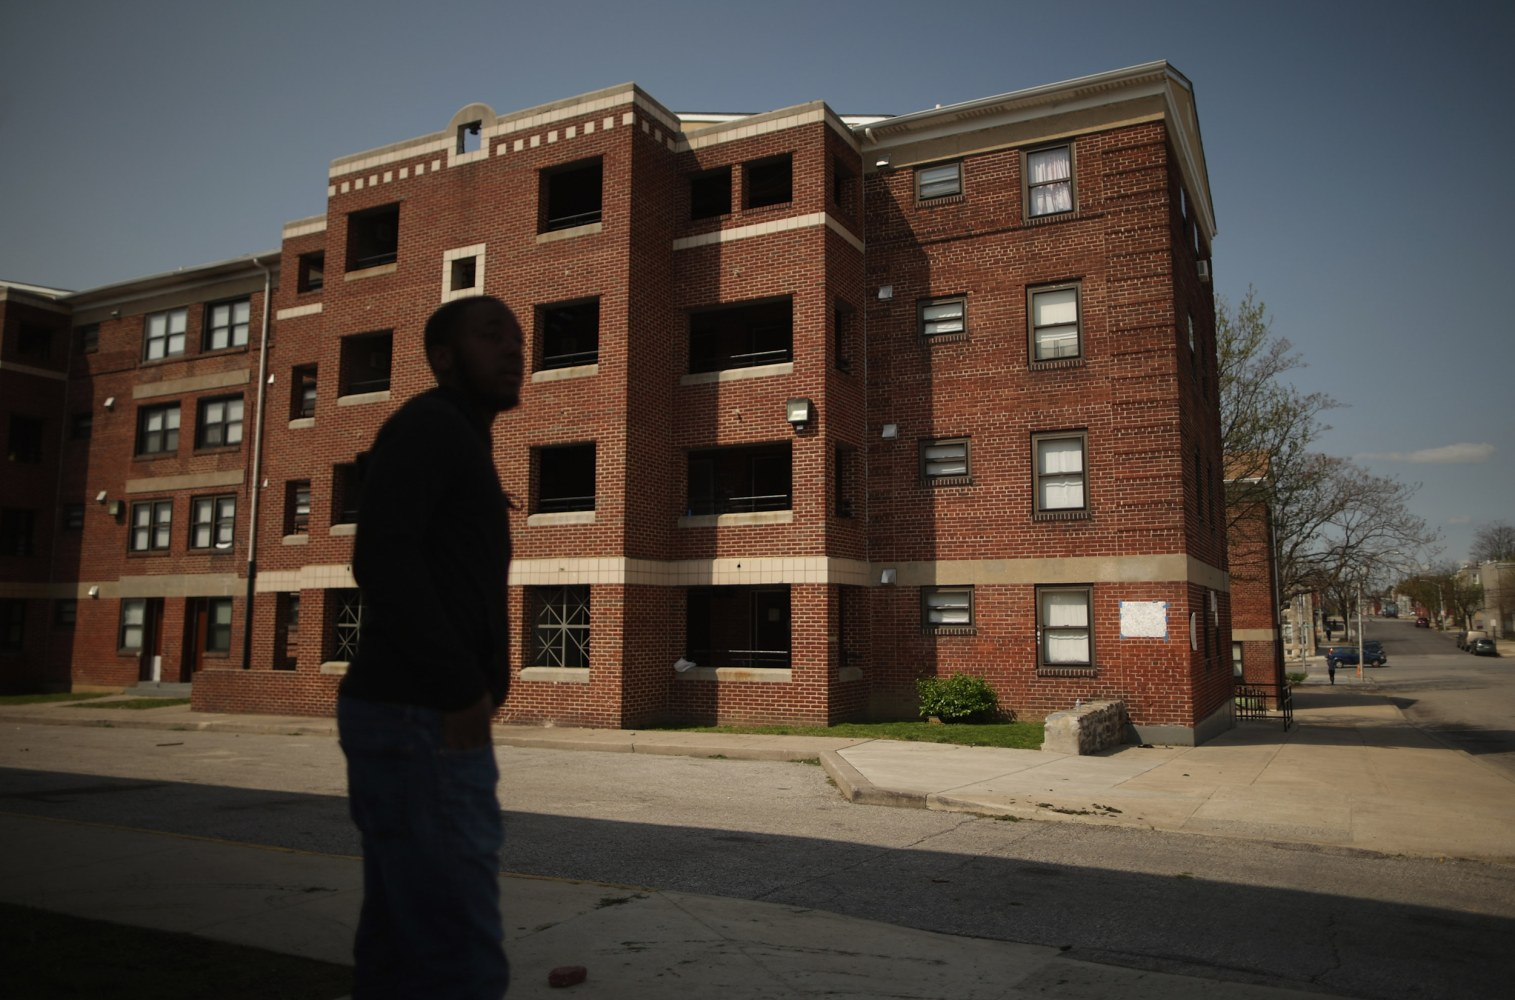 Baltimore Public Housing Workers Demanded Sex For Repairs